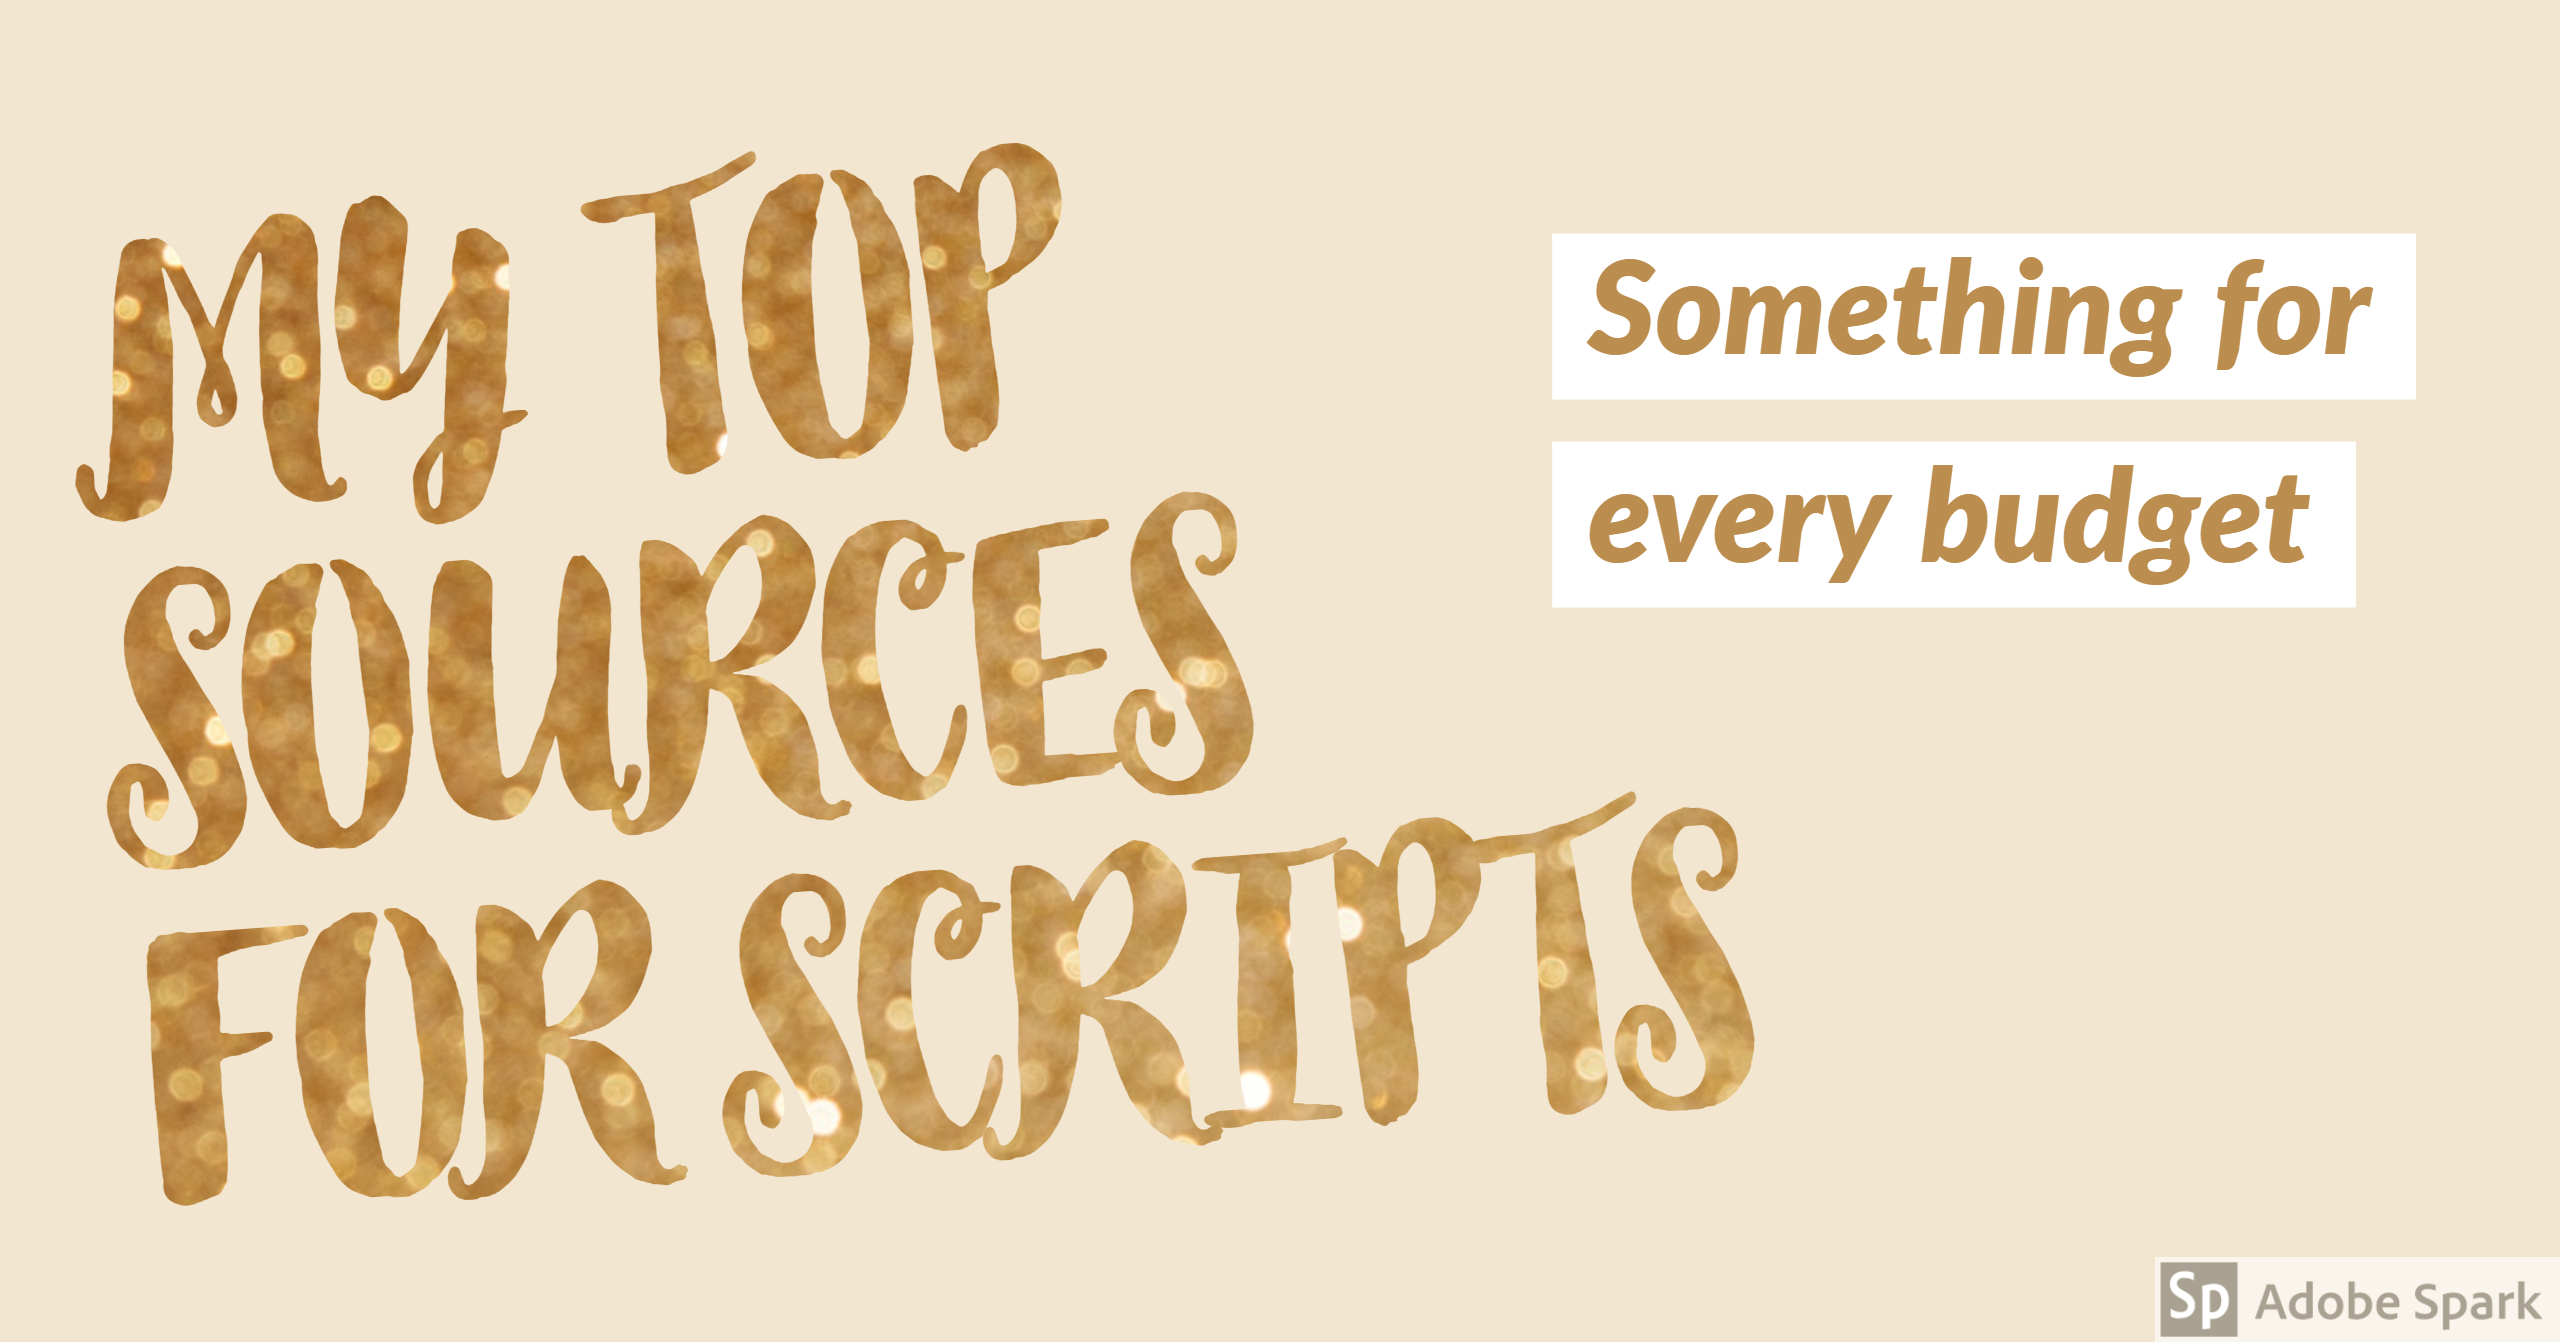 My Top Script Sources